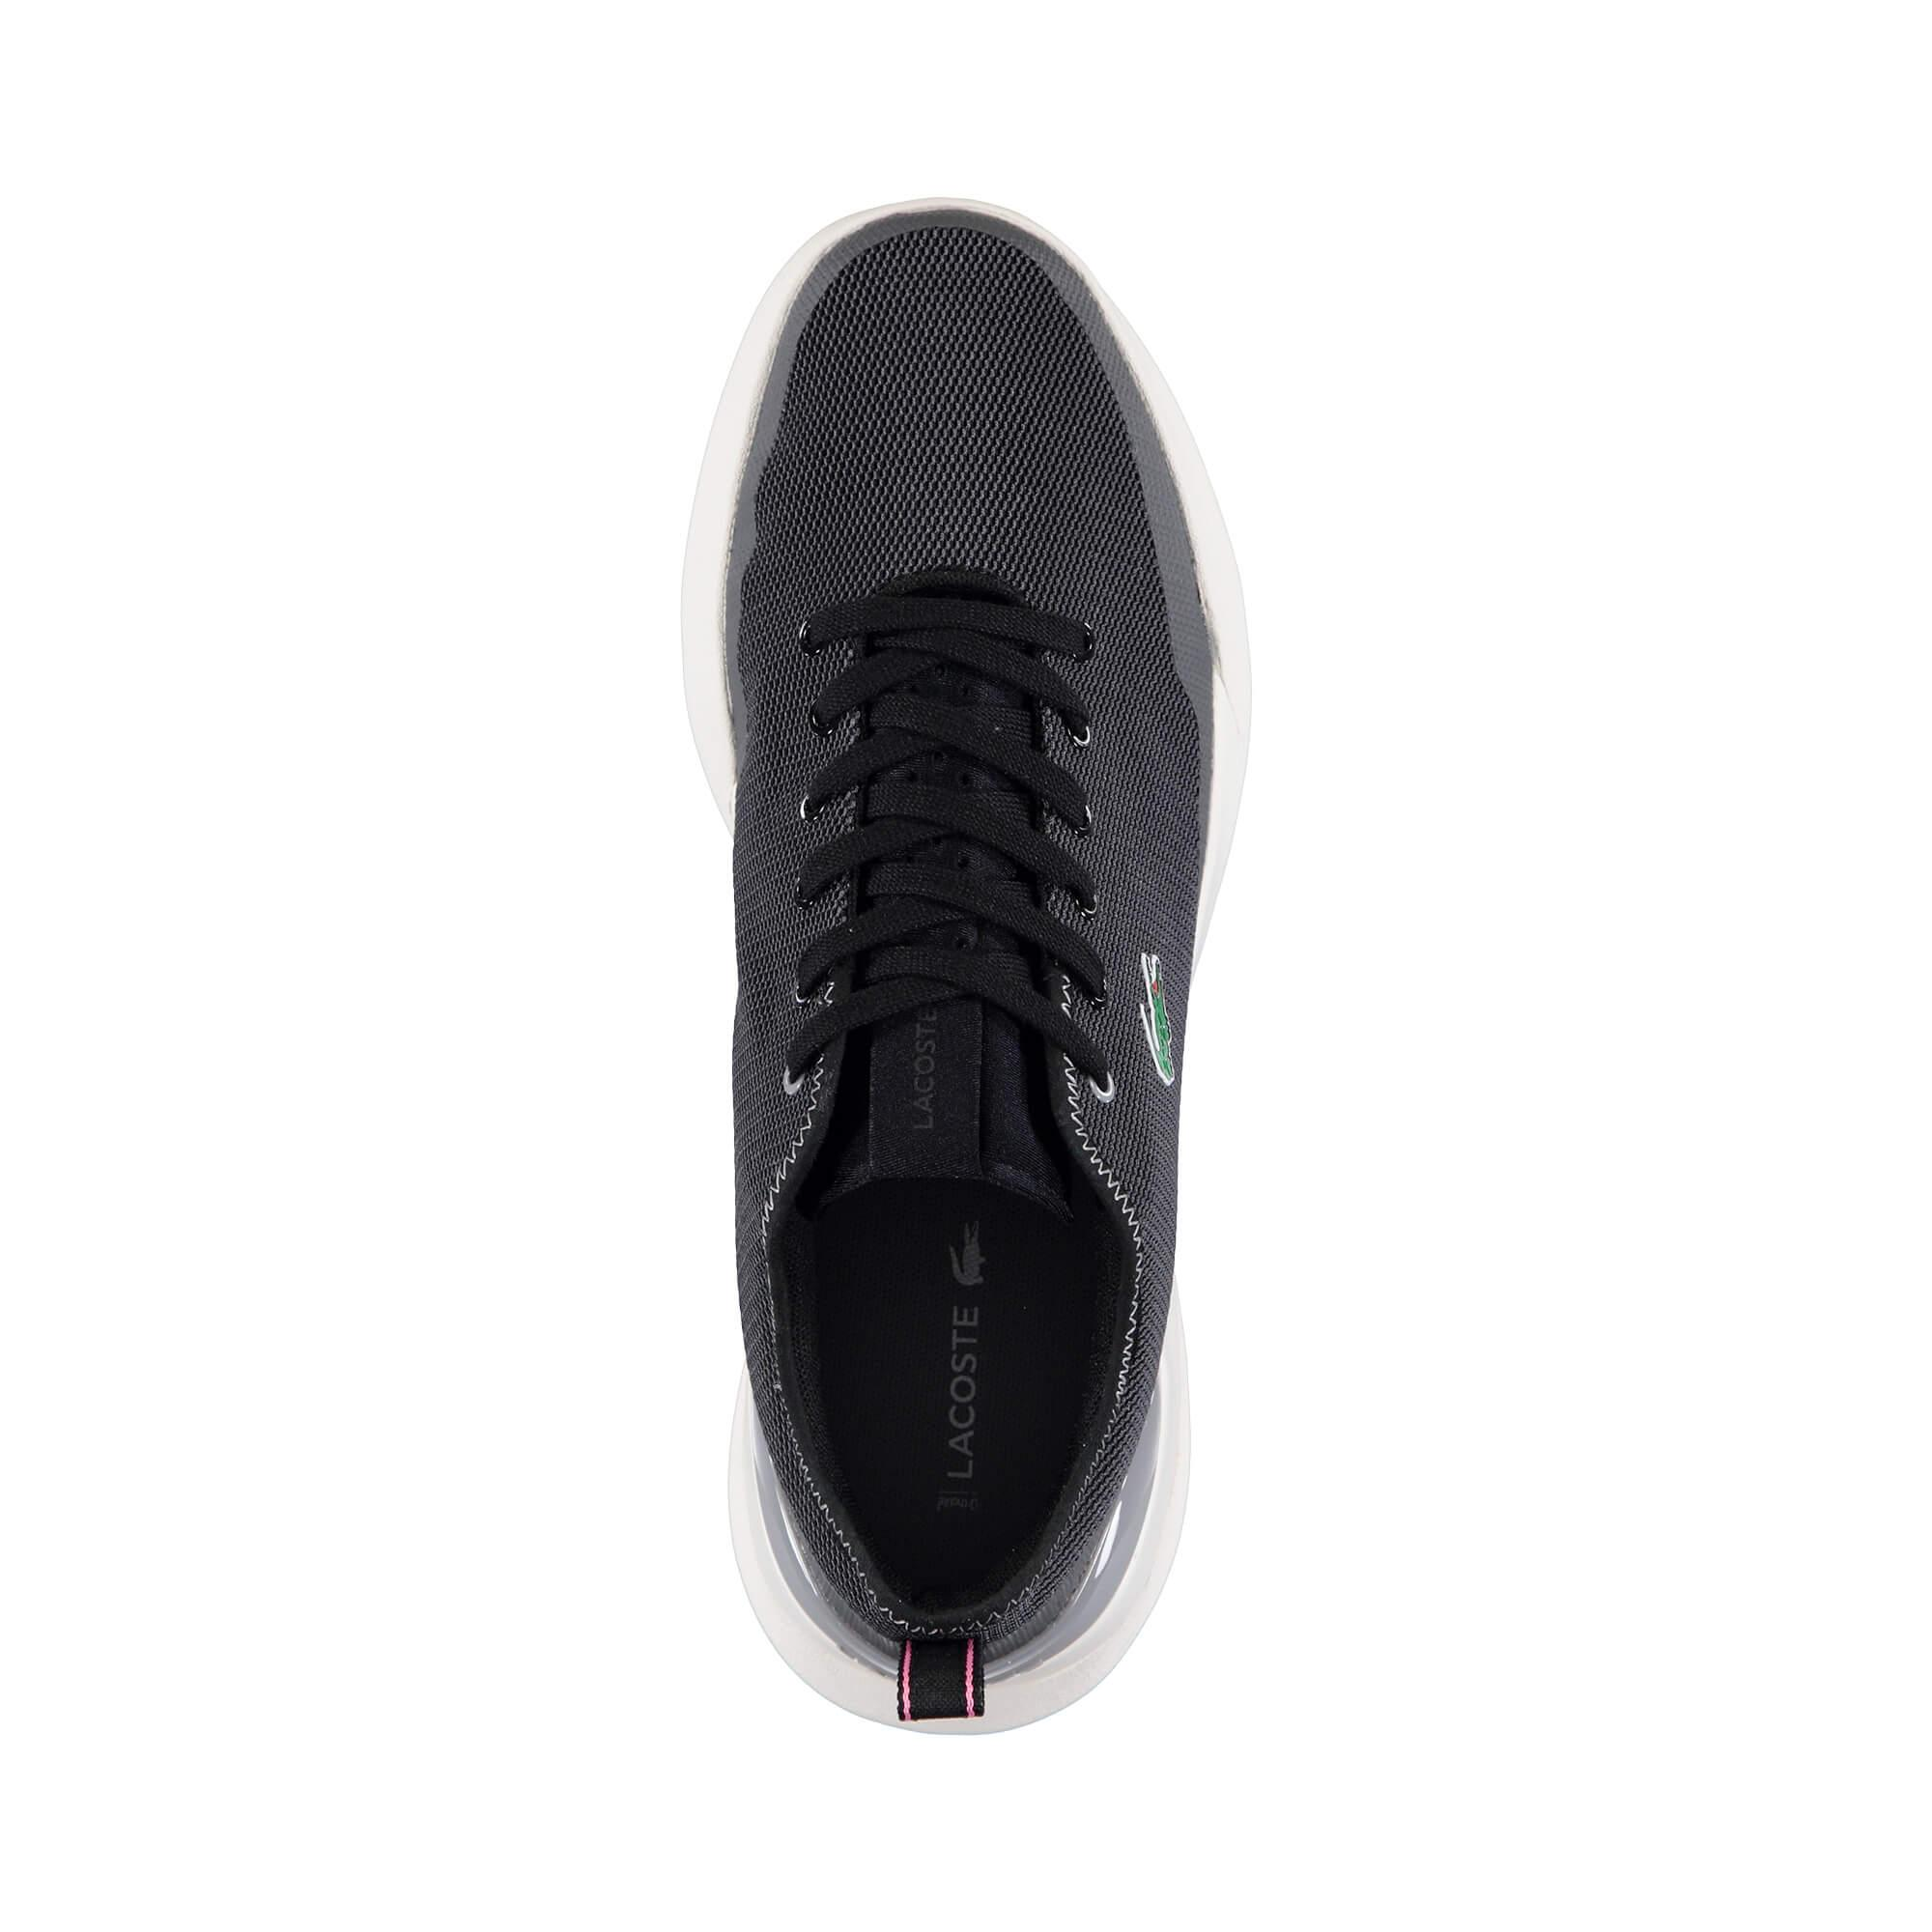 Lacoste Men's LT Dual Sneakers